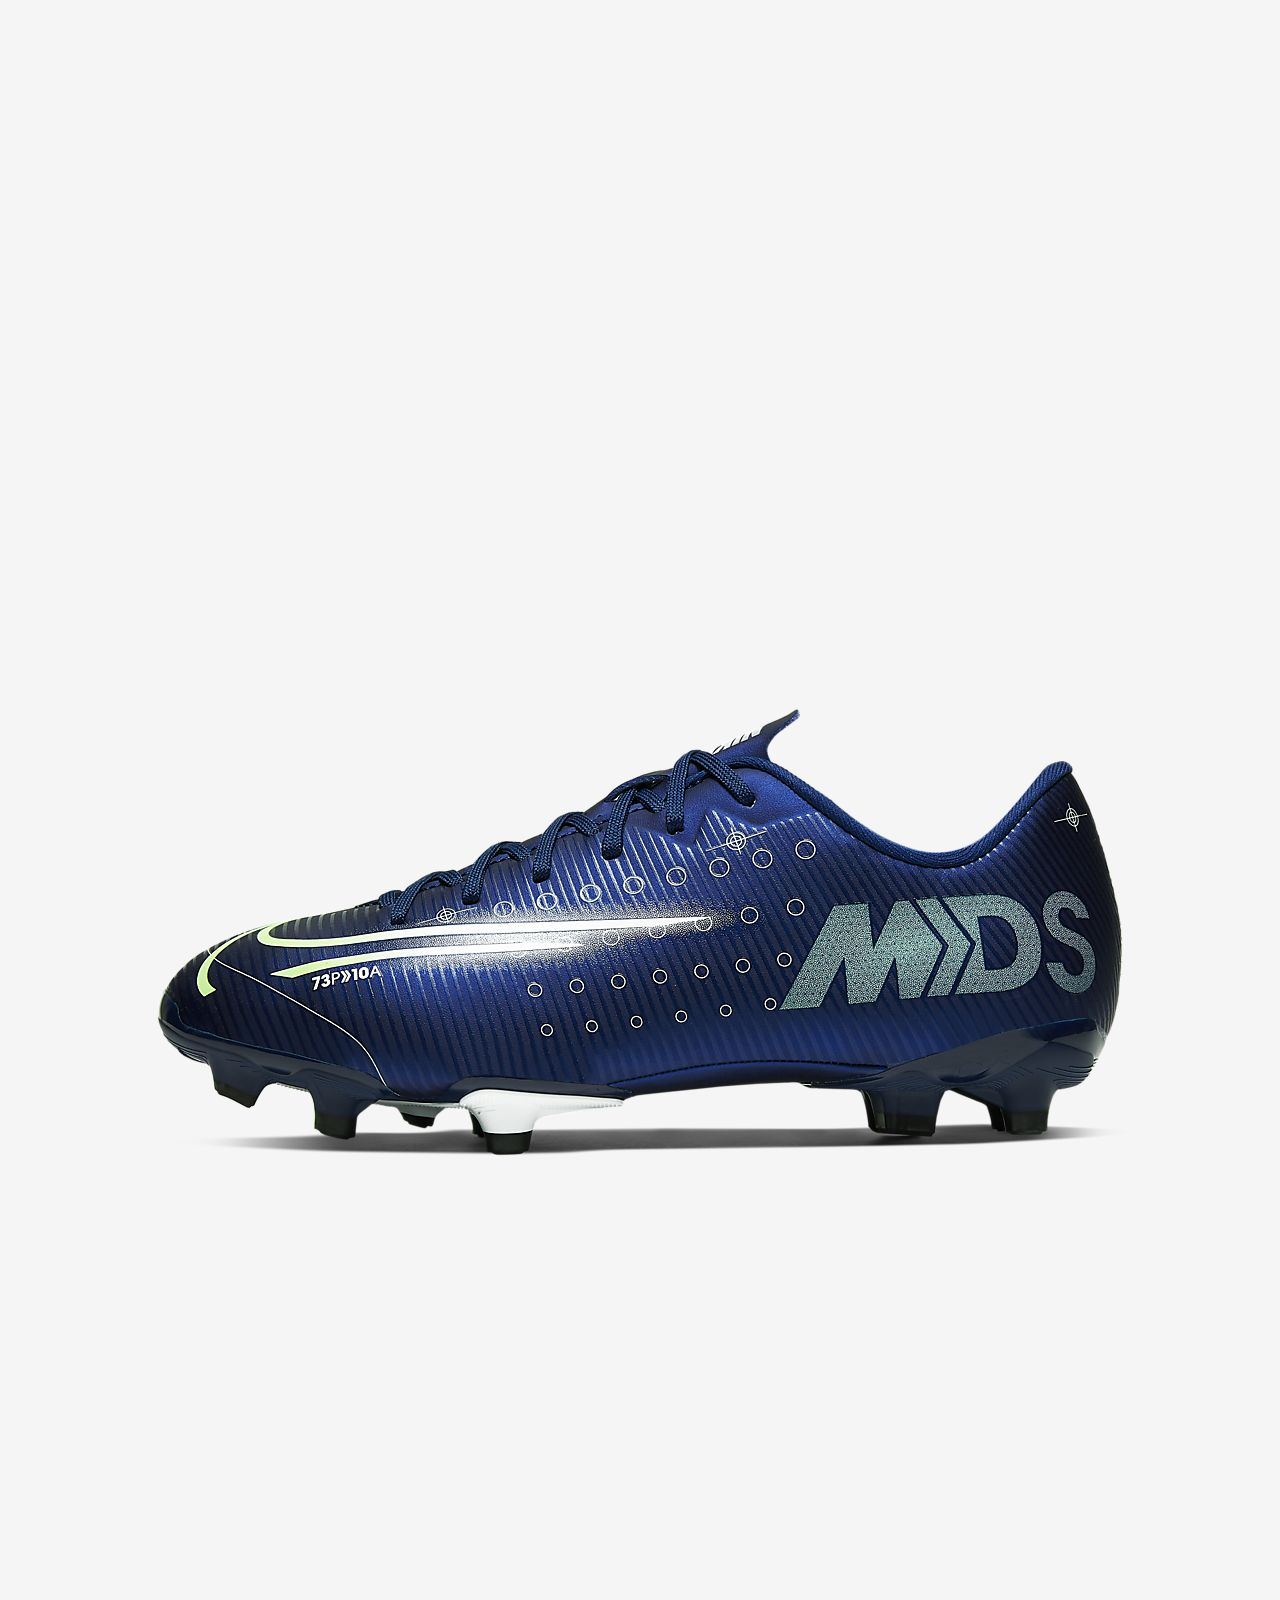 Nike Jr. Mercurial Vapor 13 Academy MDS MG Younger/Older Kids' Multi-Ground Football Boot